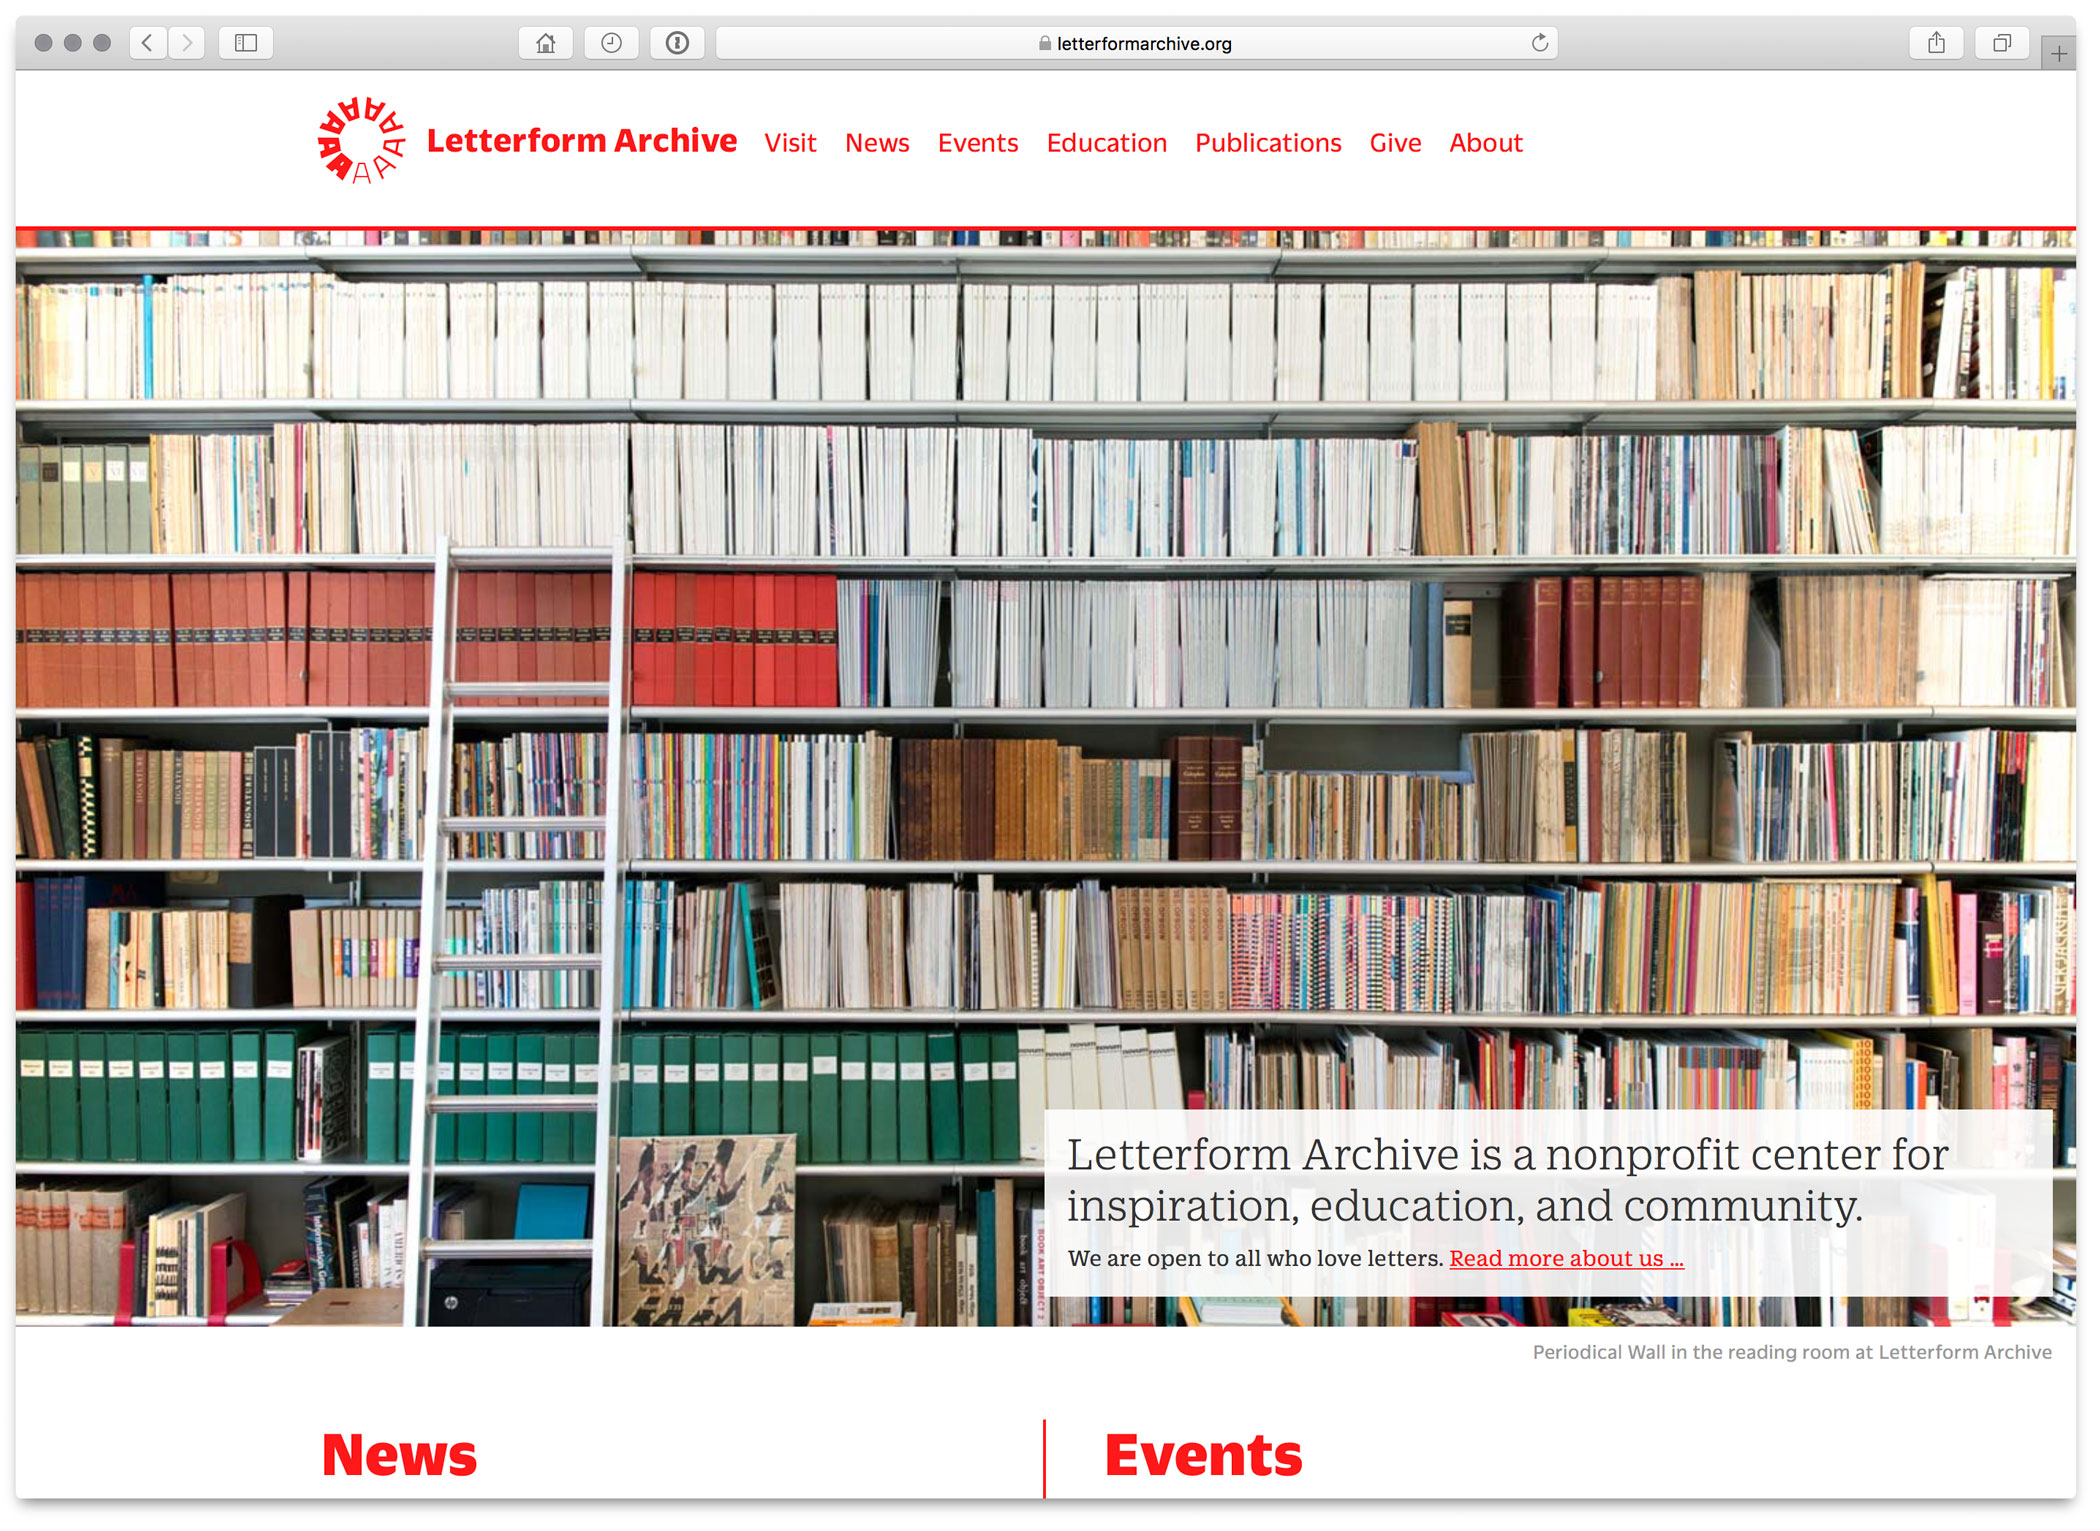 A screenshot of Letterform Archive's website homepage in July 2017